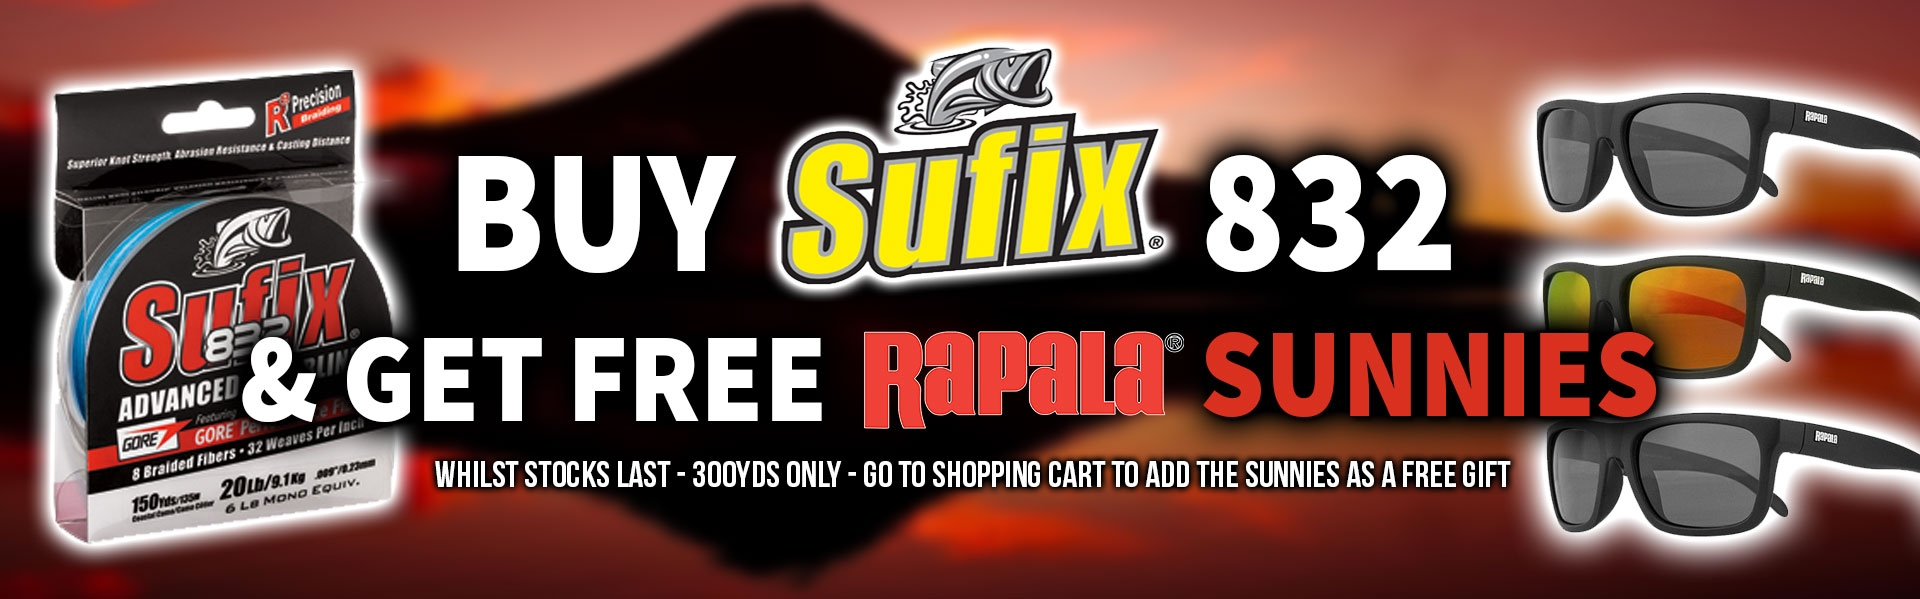 BUY SUFIX 832 AND GET FREE SUNNIES